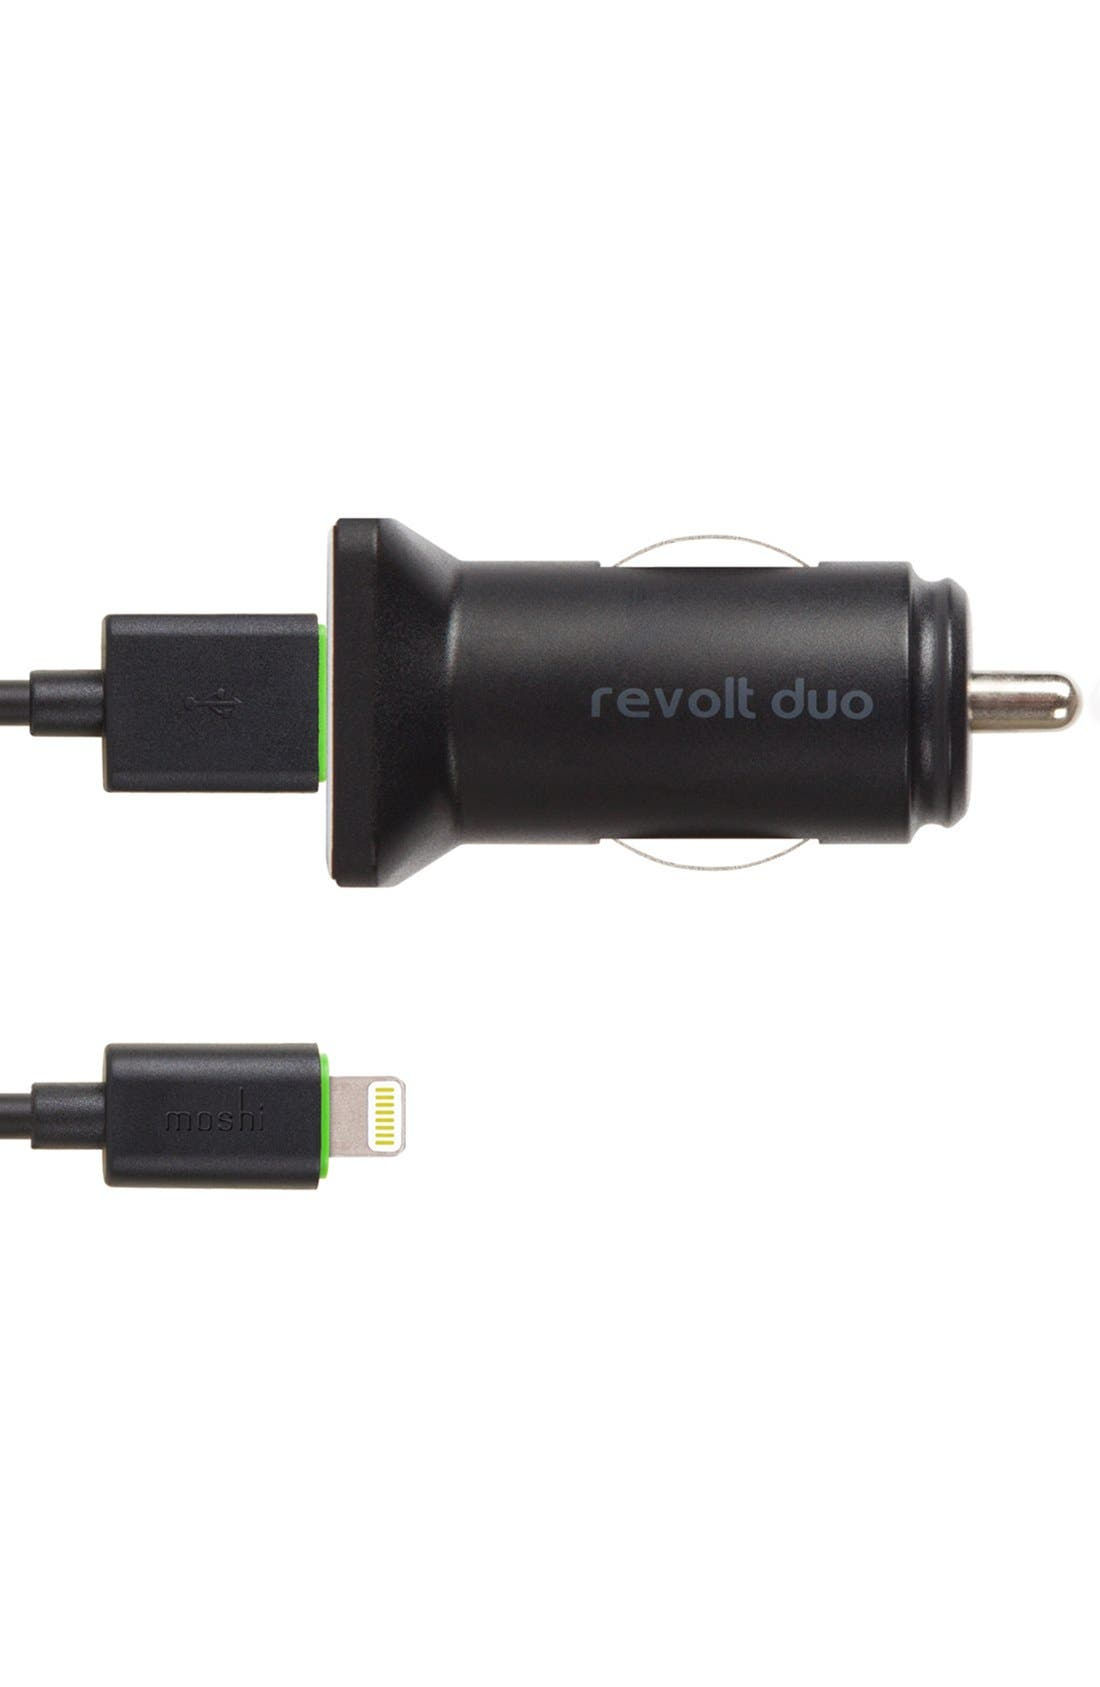 Moshi 'Revolt Duo' 20W USB Car Charger with Lightning Cable